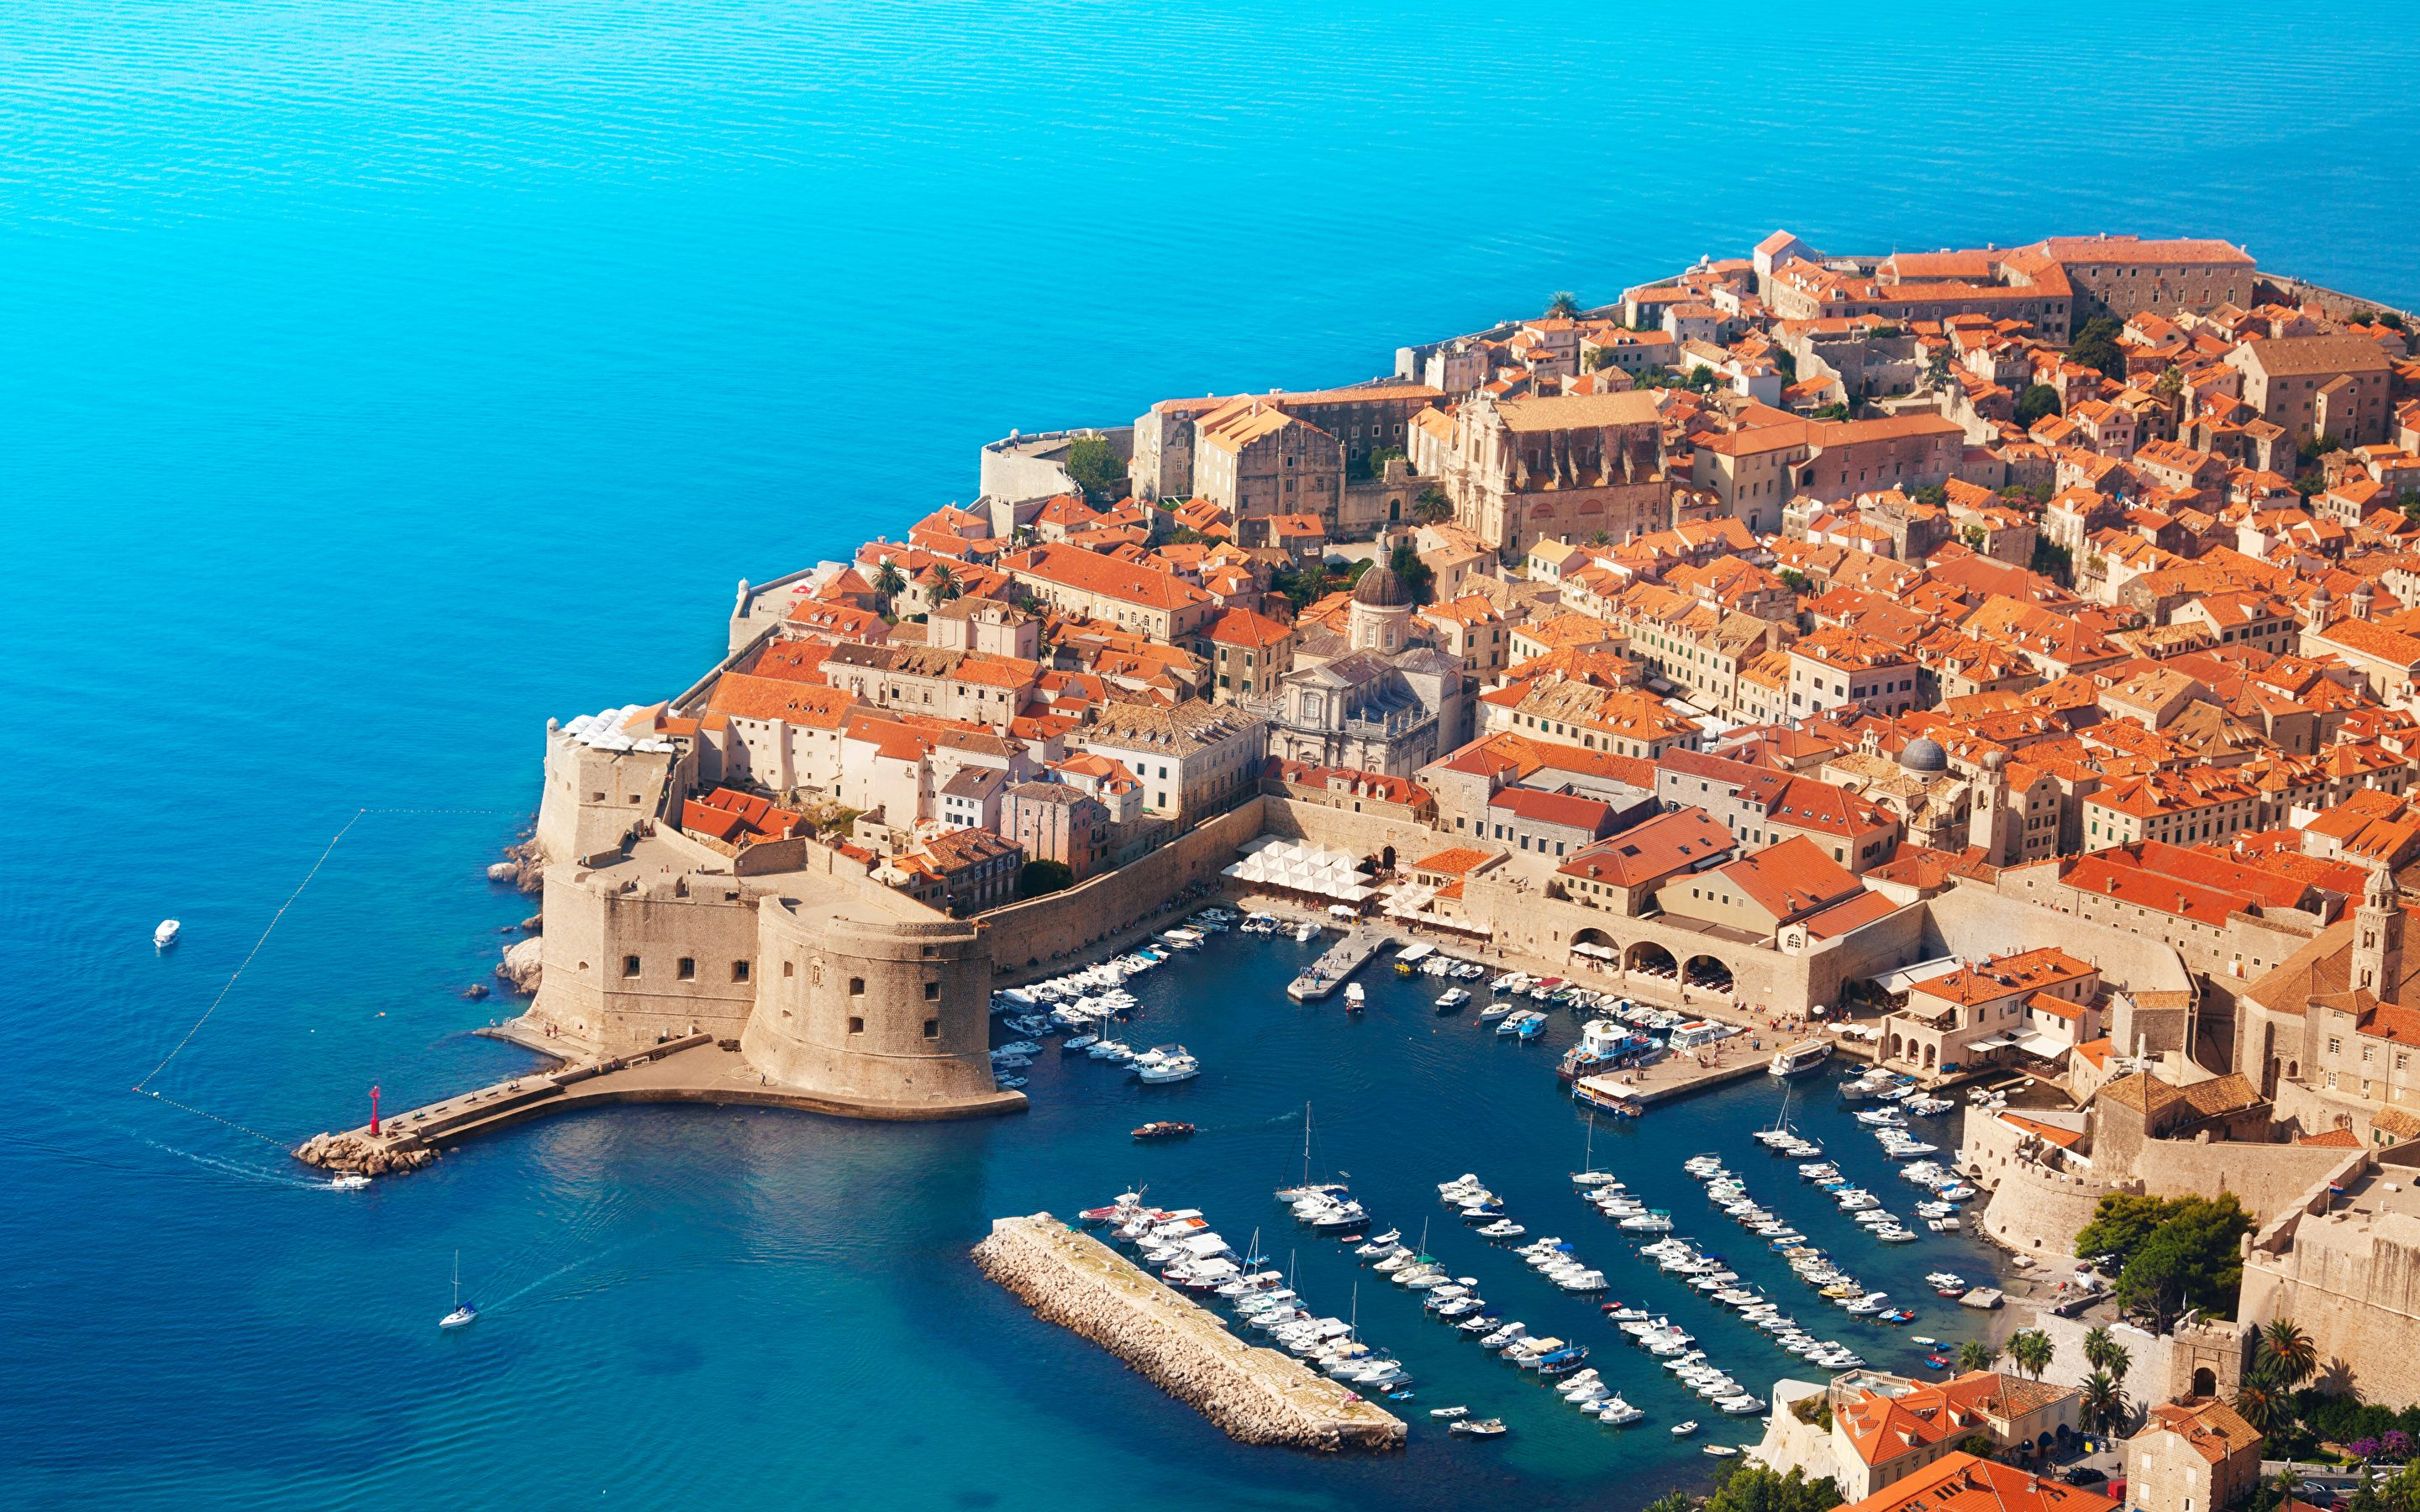 Wallpapers Croatia Dubrovnik Pier Coast powerboat From 2880x1800